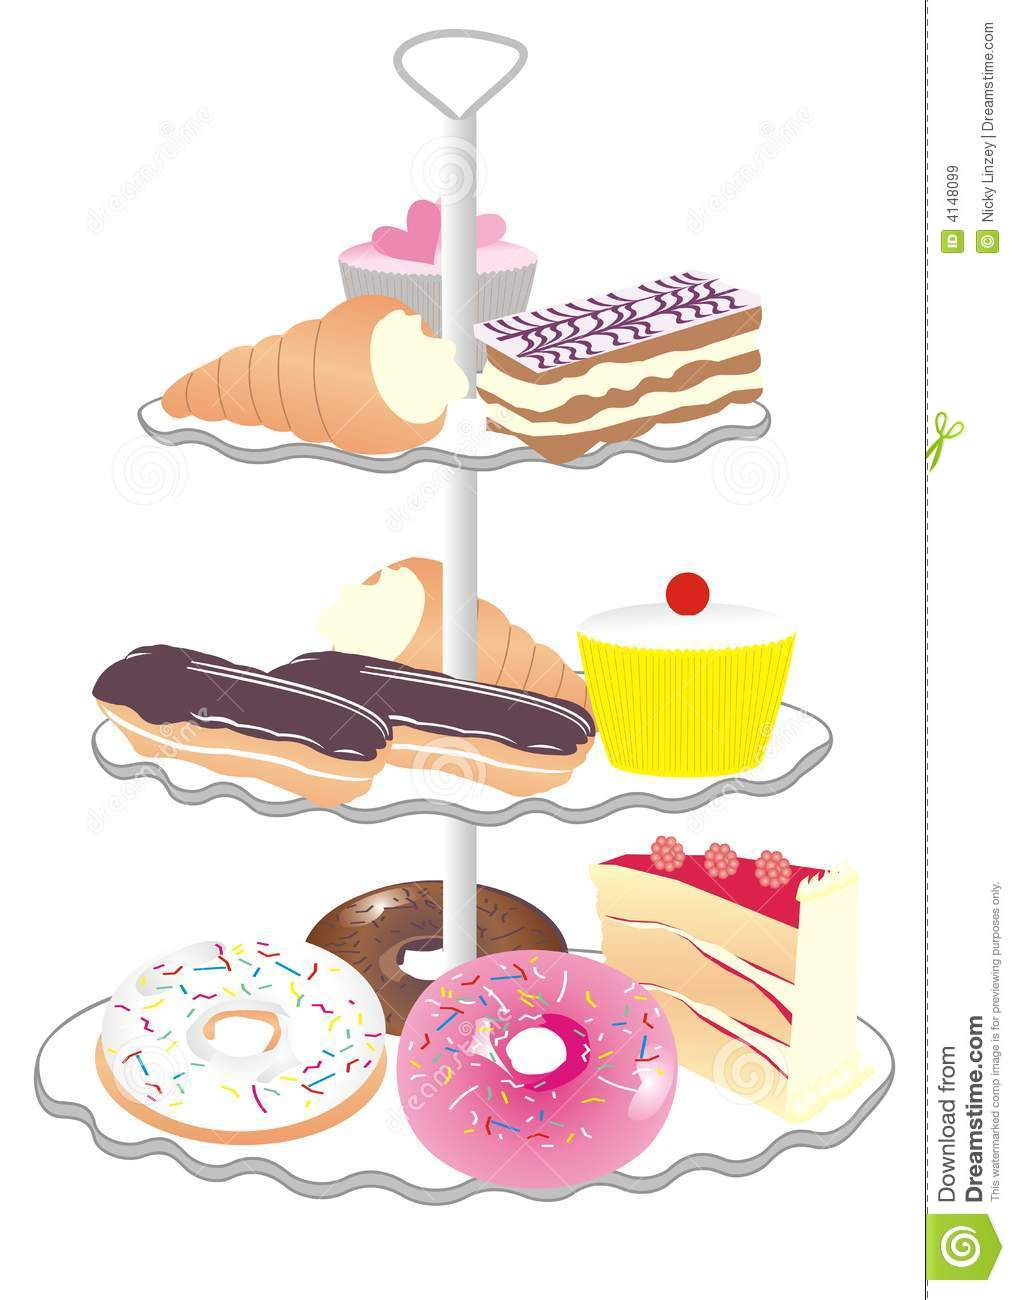 Cake stand clipart 7 » Clipart Station.